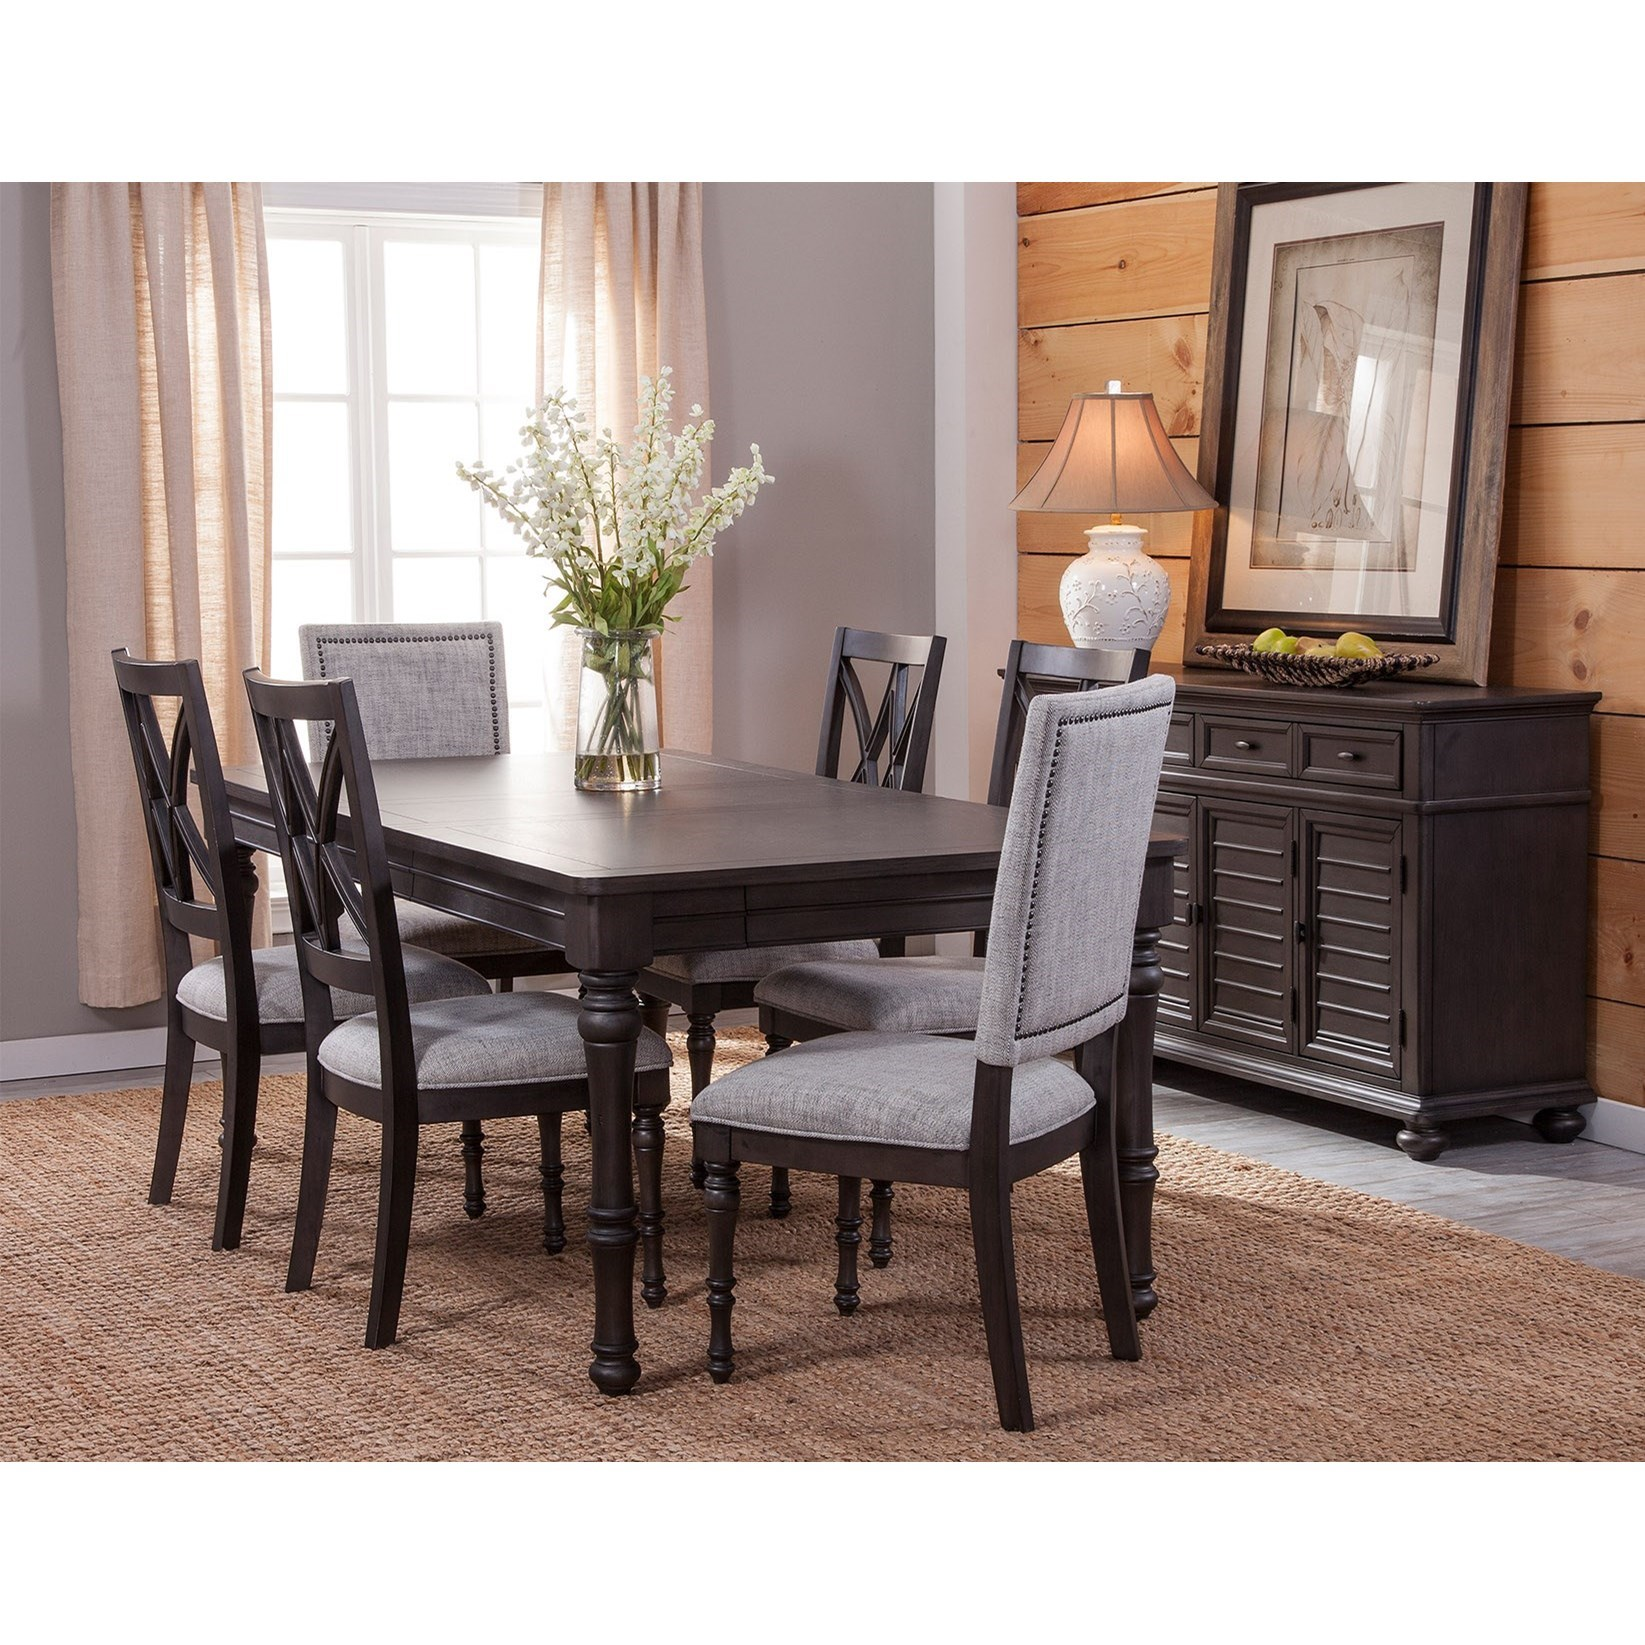 Linnett Formal Dining Room Group by Steve Silver at Northeast Factory Direct